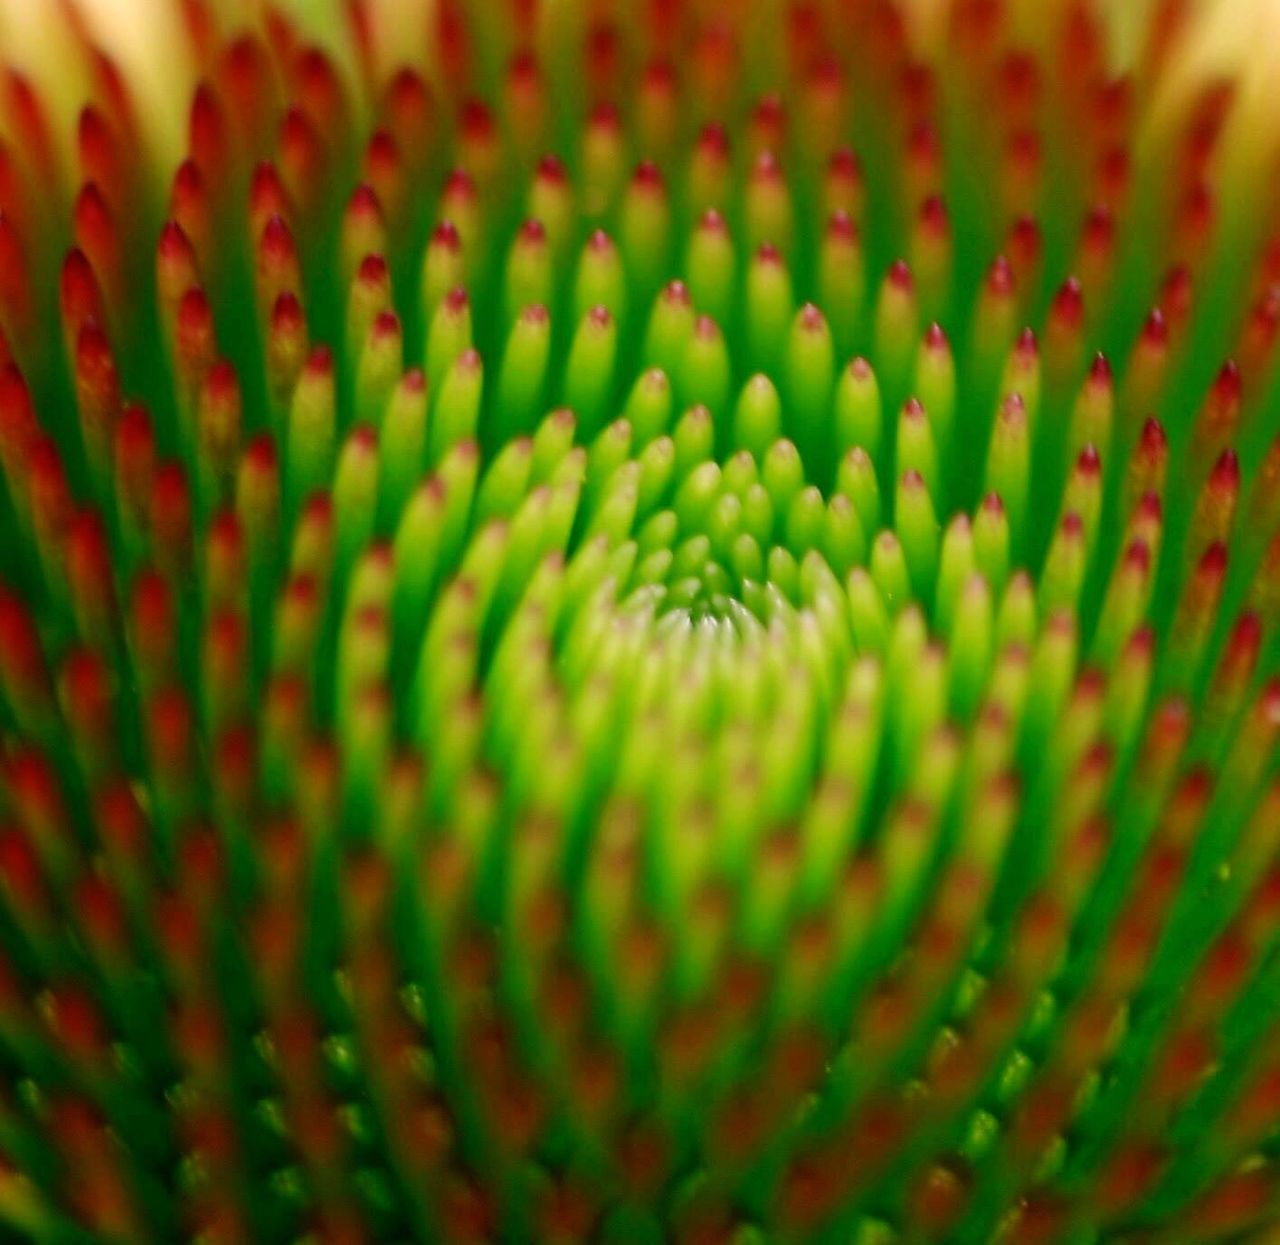 pattern, green color, textured, selective focus, close-up, no people, full frame, abstract, backgrounds, growth, beauty in nature, nature, day